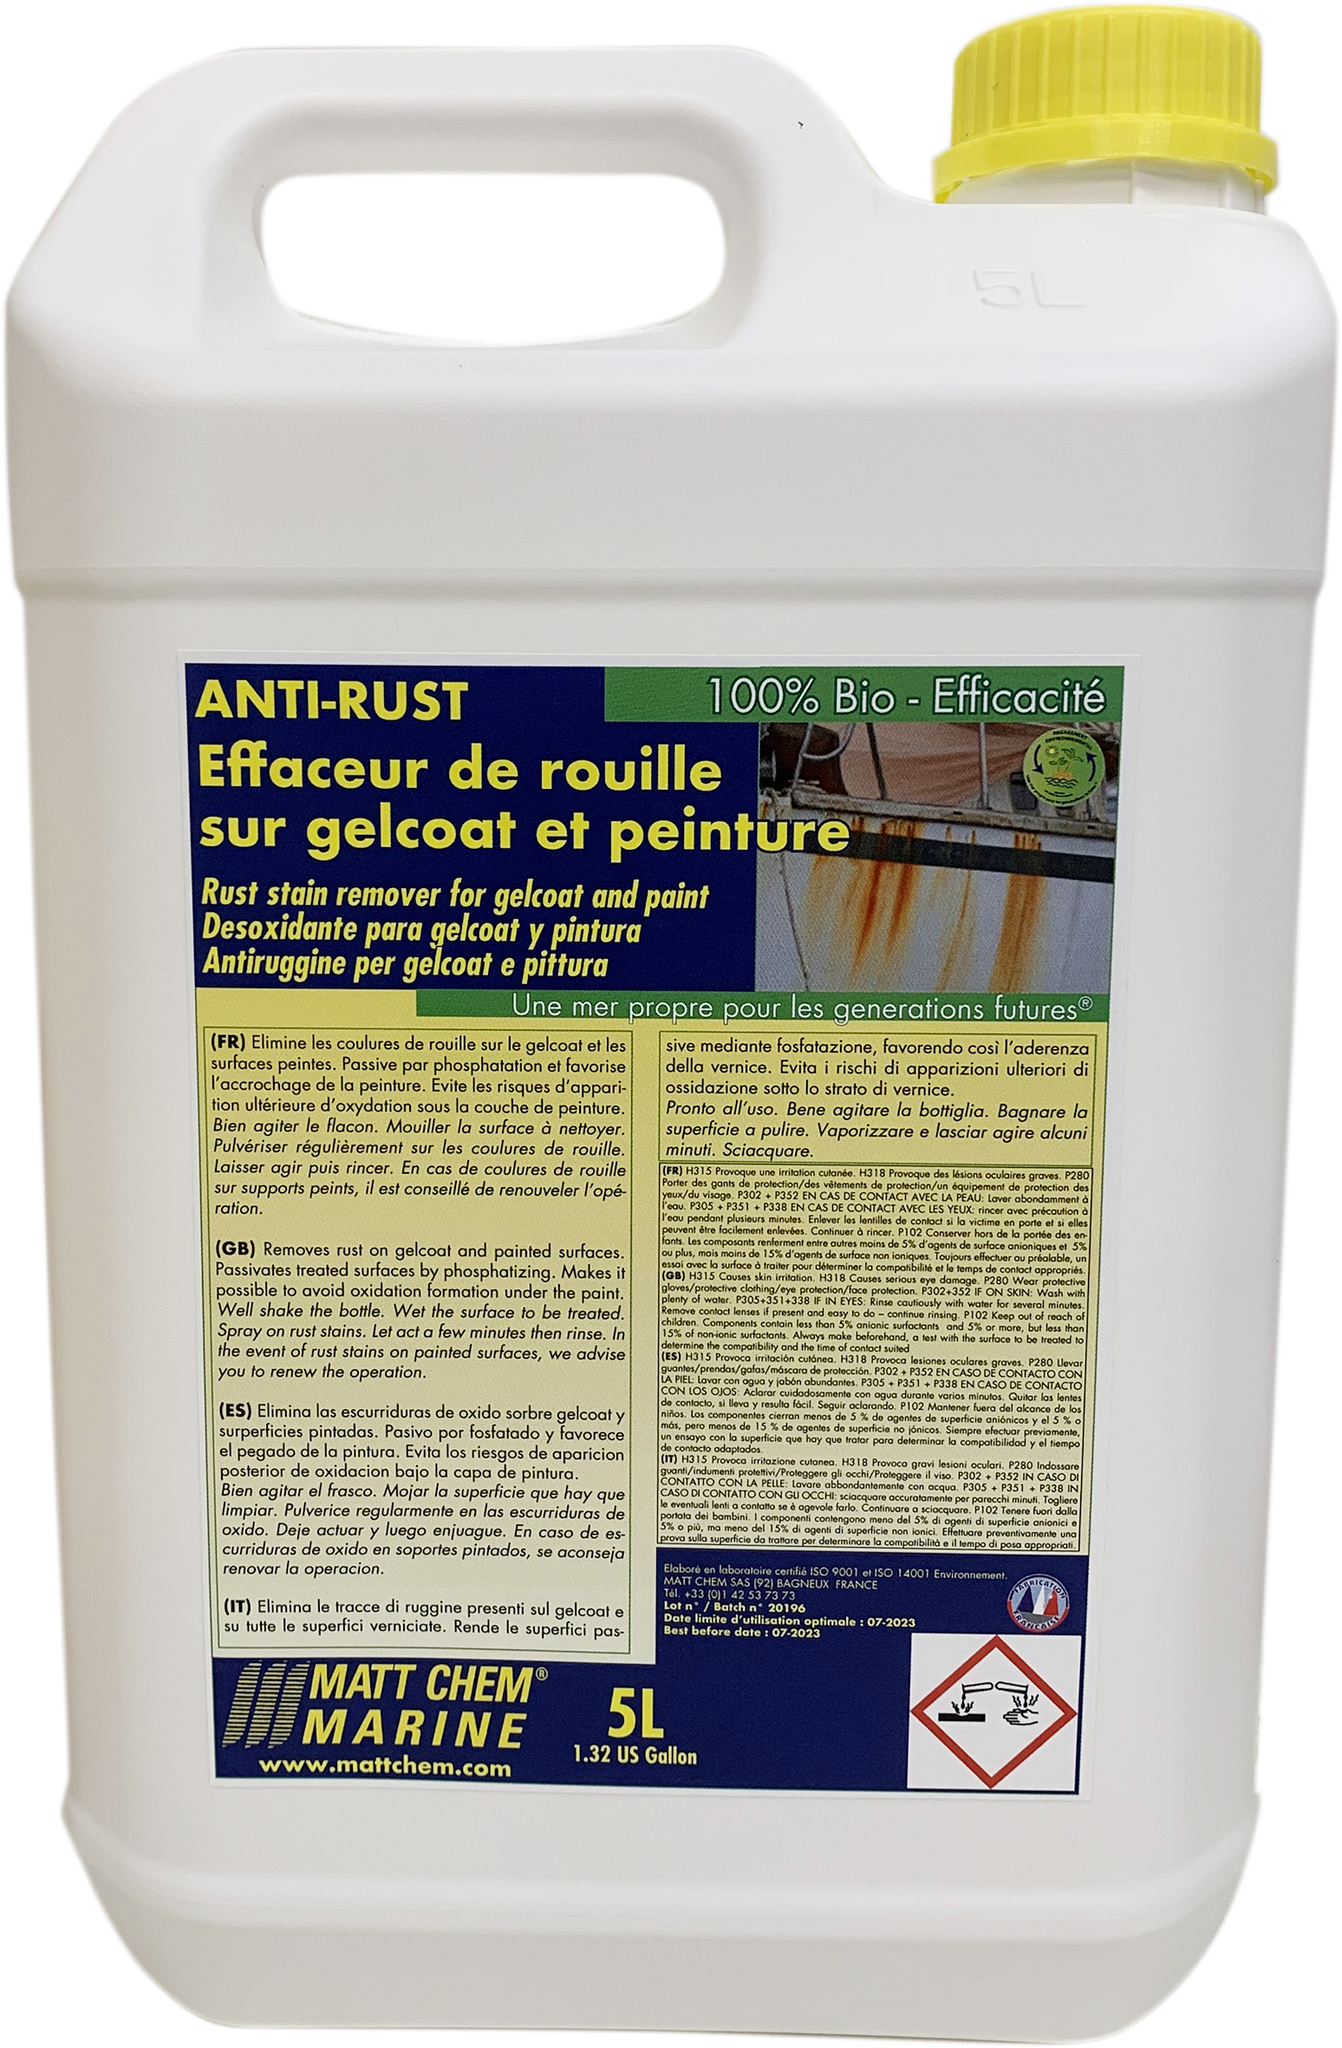 Rust stains remover for gelcoat and paint Anti-rust